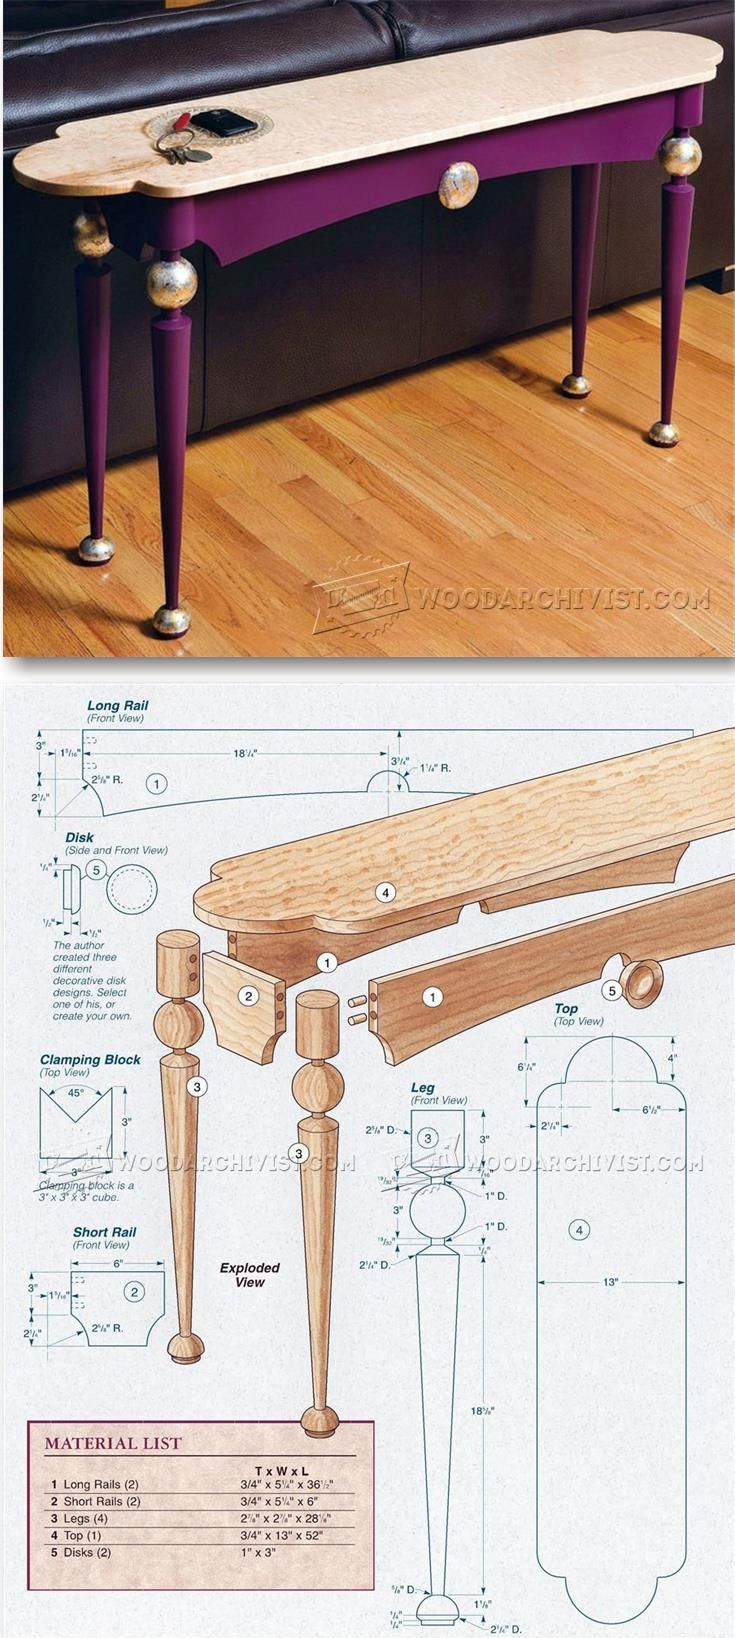 Sofa table plans furniture plans and projects woodarchivist sofa table plans furniture plans and projects woodwork woodworking woodworking tips woodworking techniques geotapseo Image collections